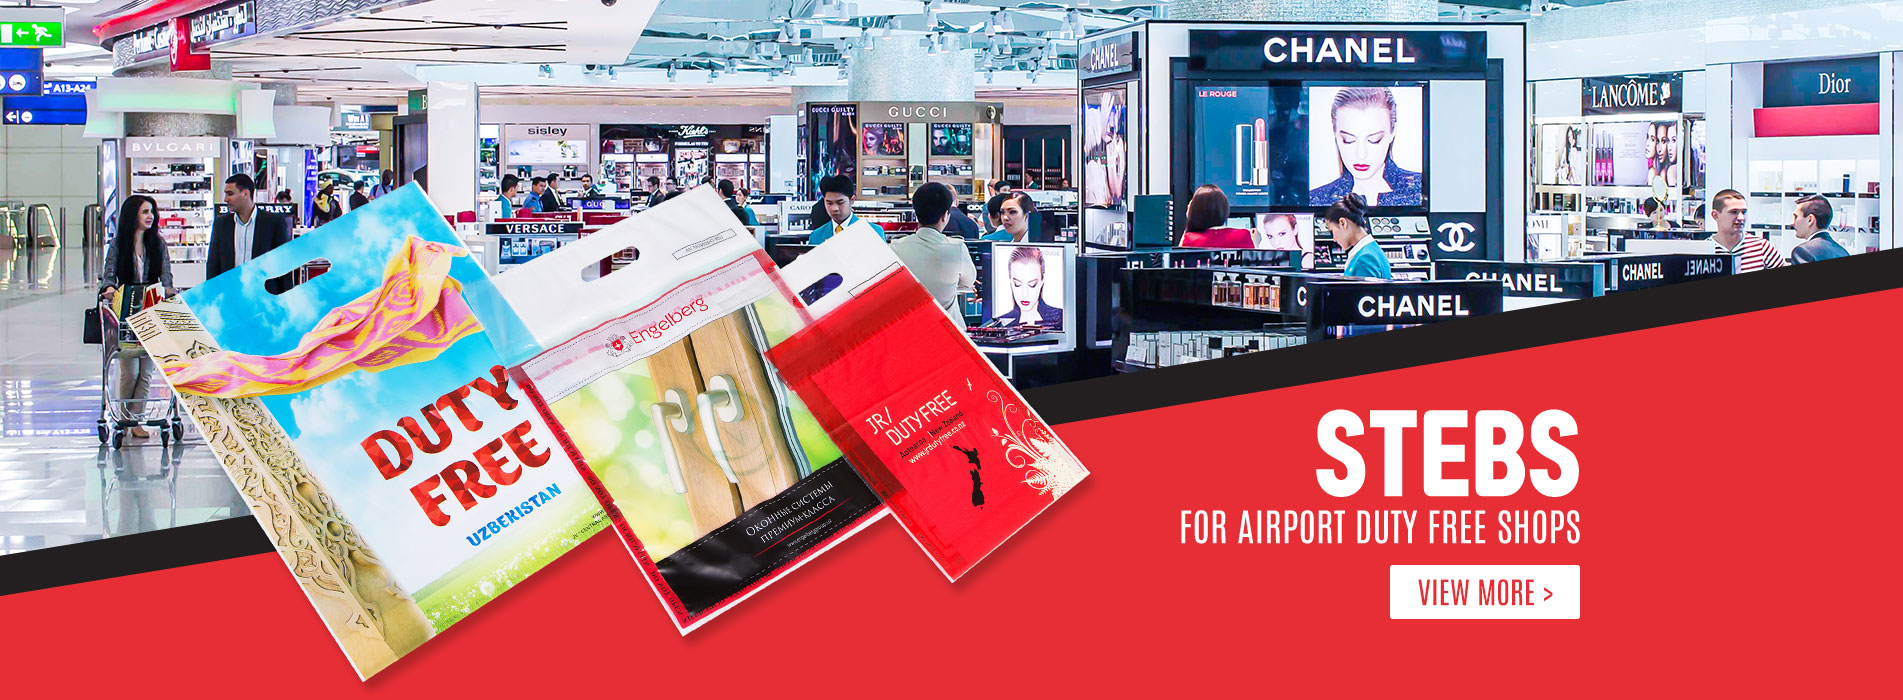 ICAO STEBs for Airport Duty Free Shops